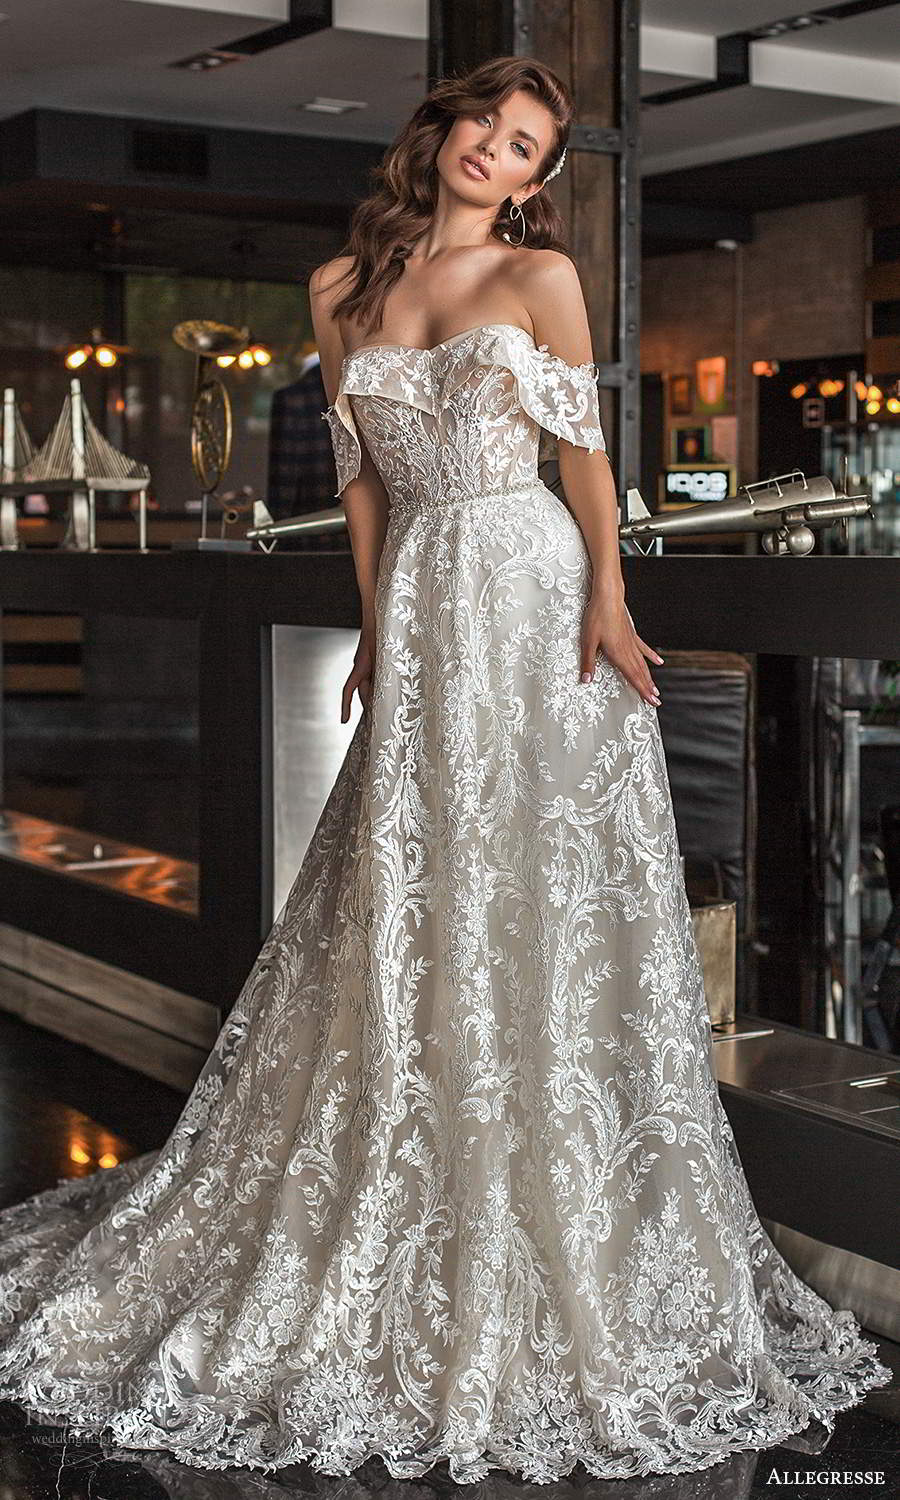 allegresse 2021 bridal off shoulder straps semi sweetheart foldover neckline fully embellished a line ball gown wedding dress chapel train (3) mv